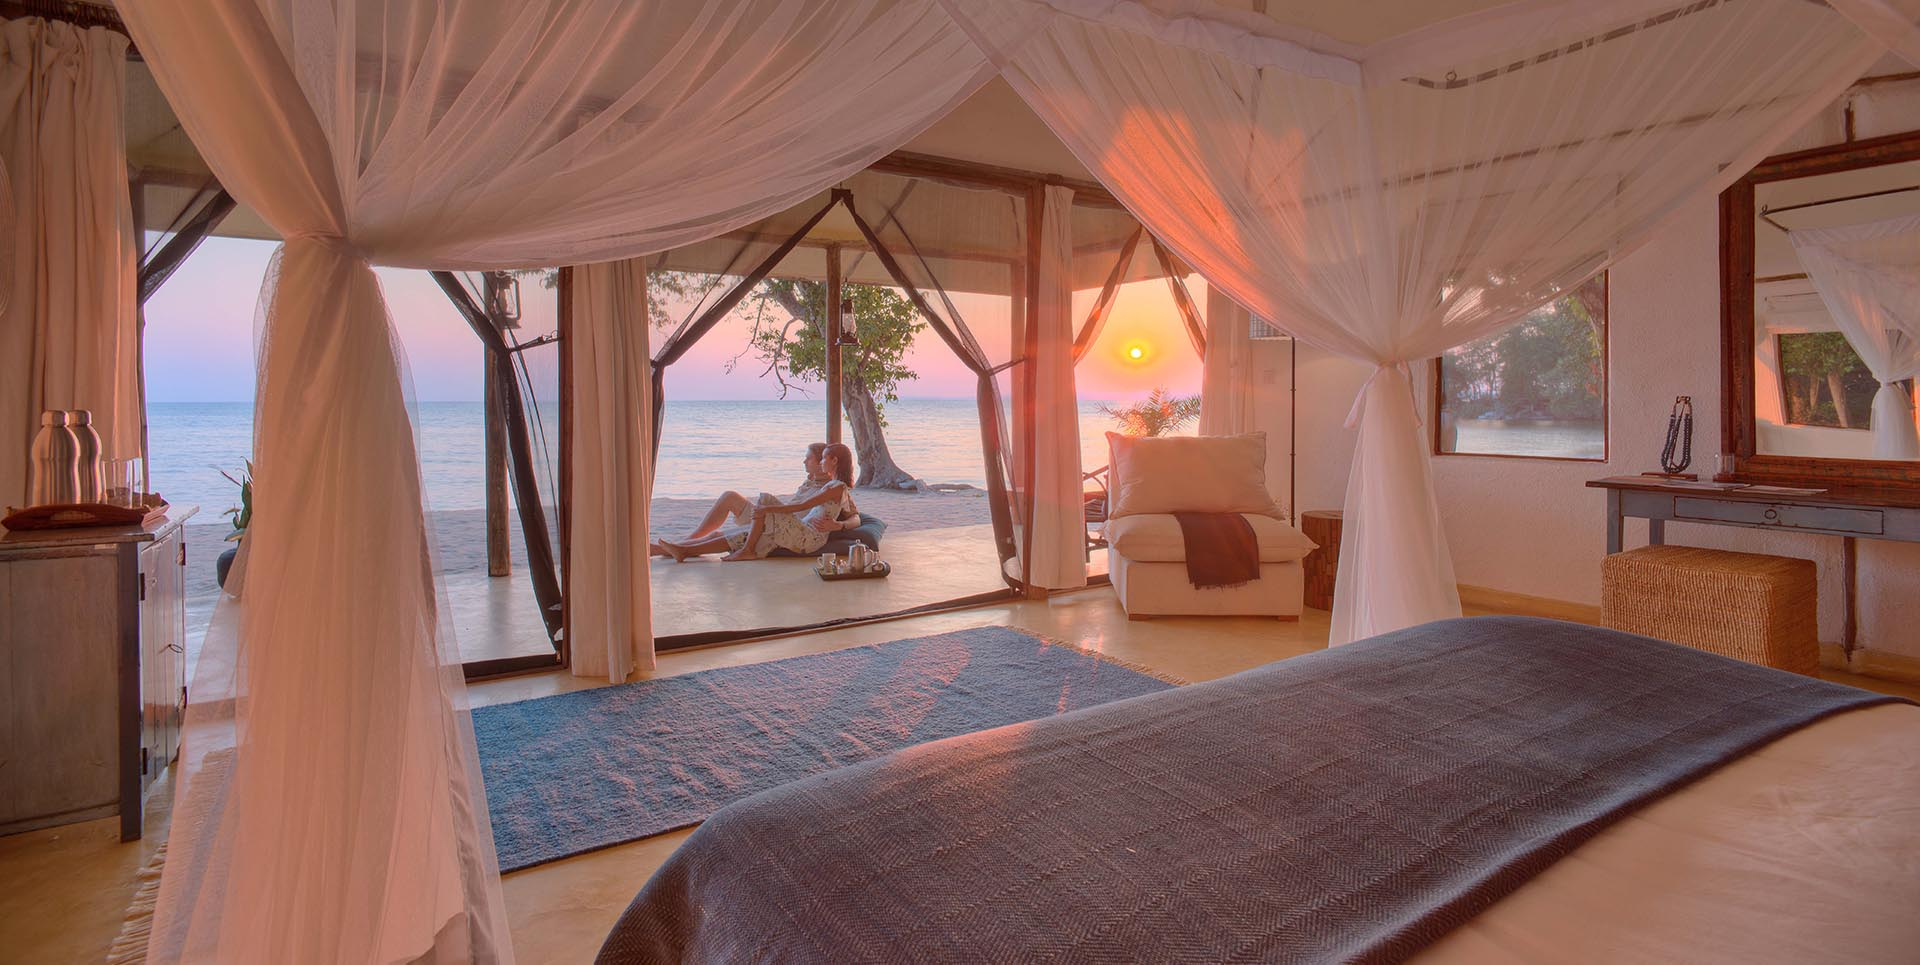 rubondo-island-guest-tent-suite-guests-view